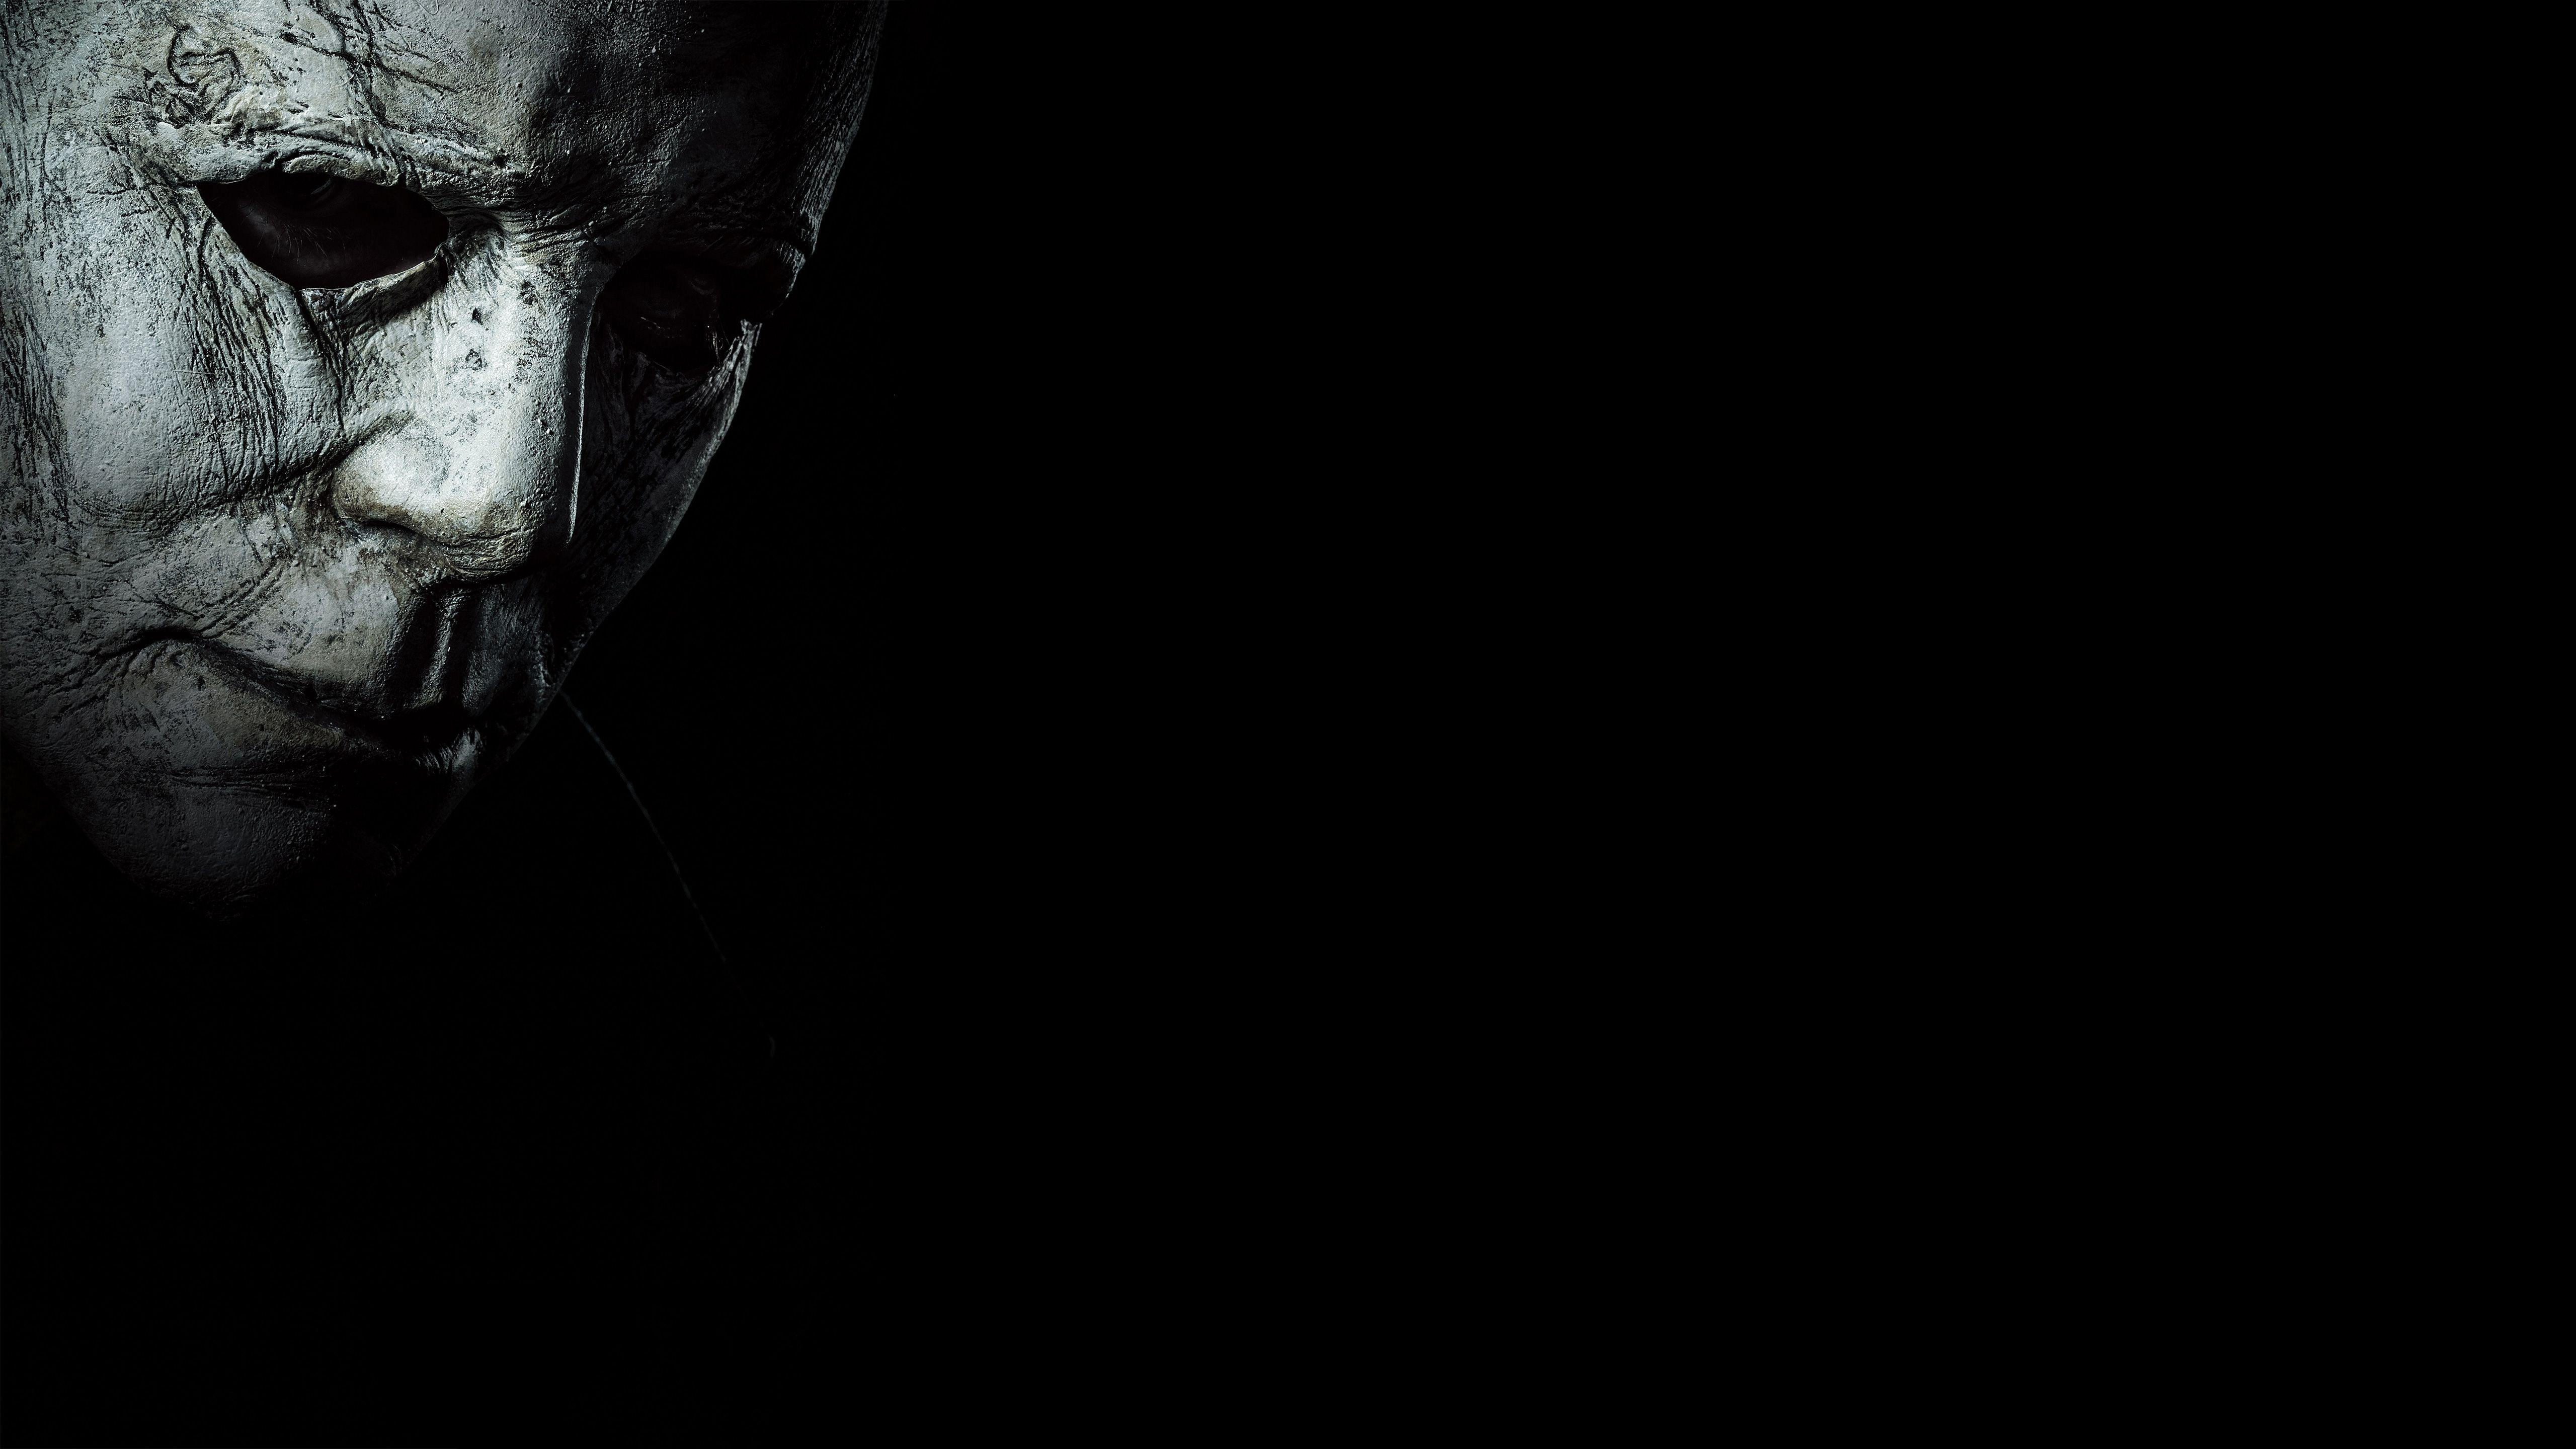 Halloween 2018 Movie 5k, HD Movies, 4k Wallpapers, Images ...